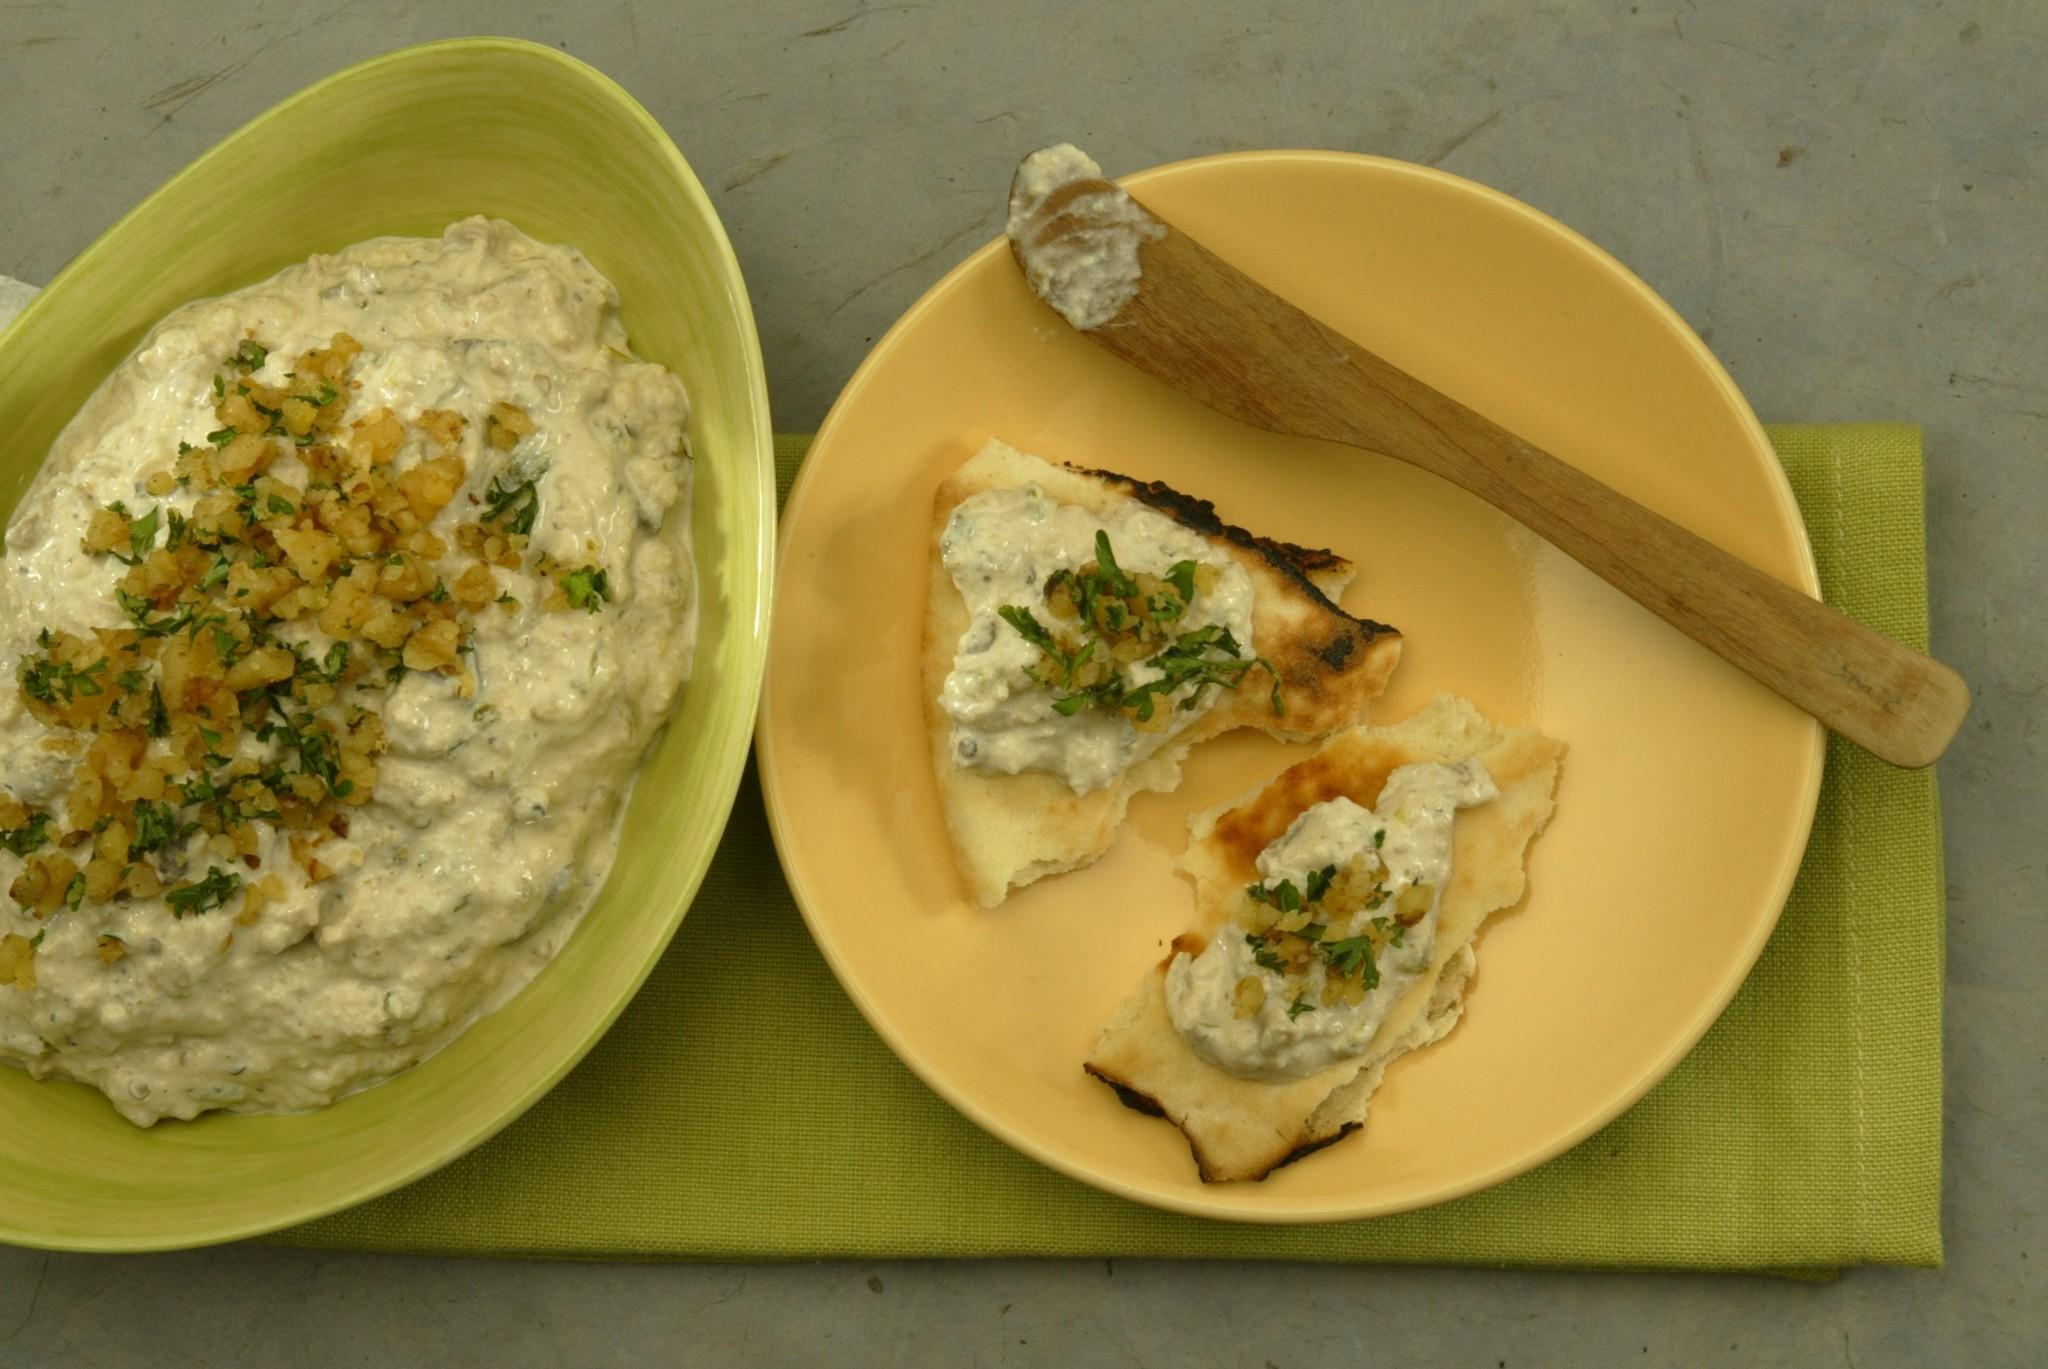 Roasted eggplant dip with walnuts